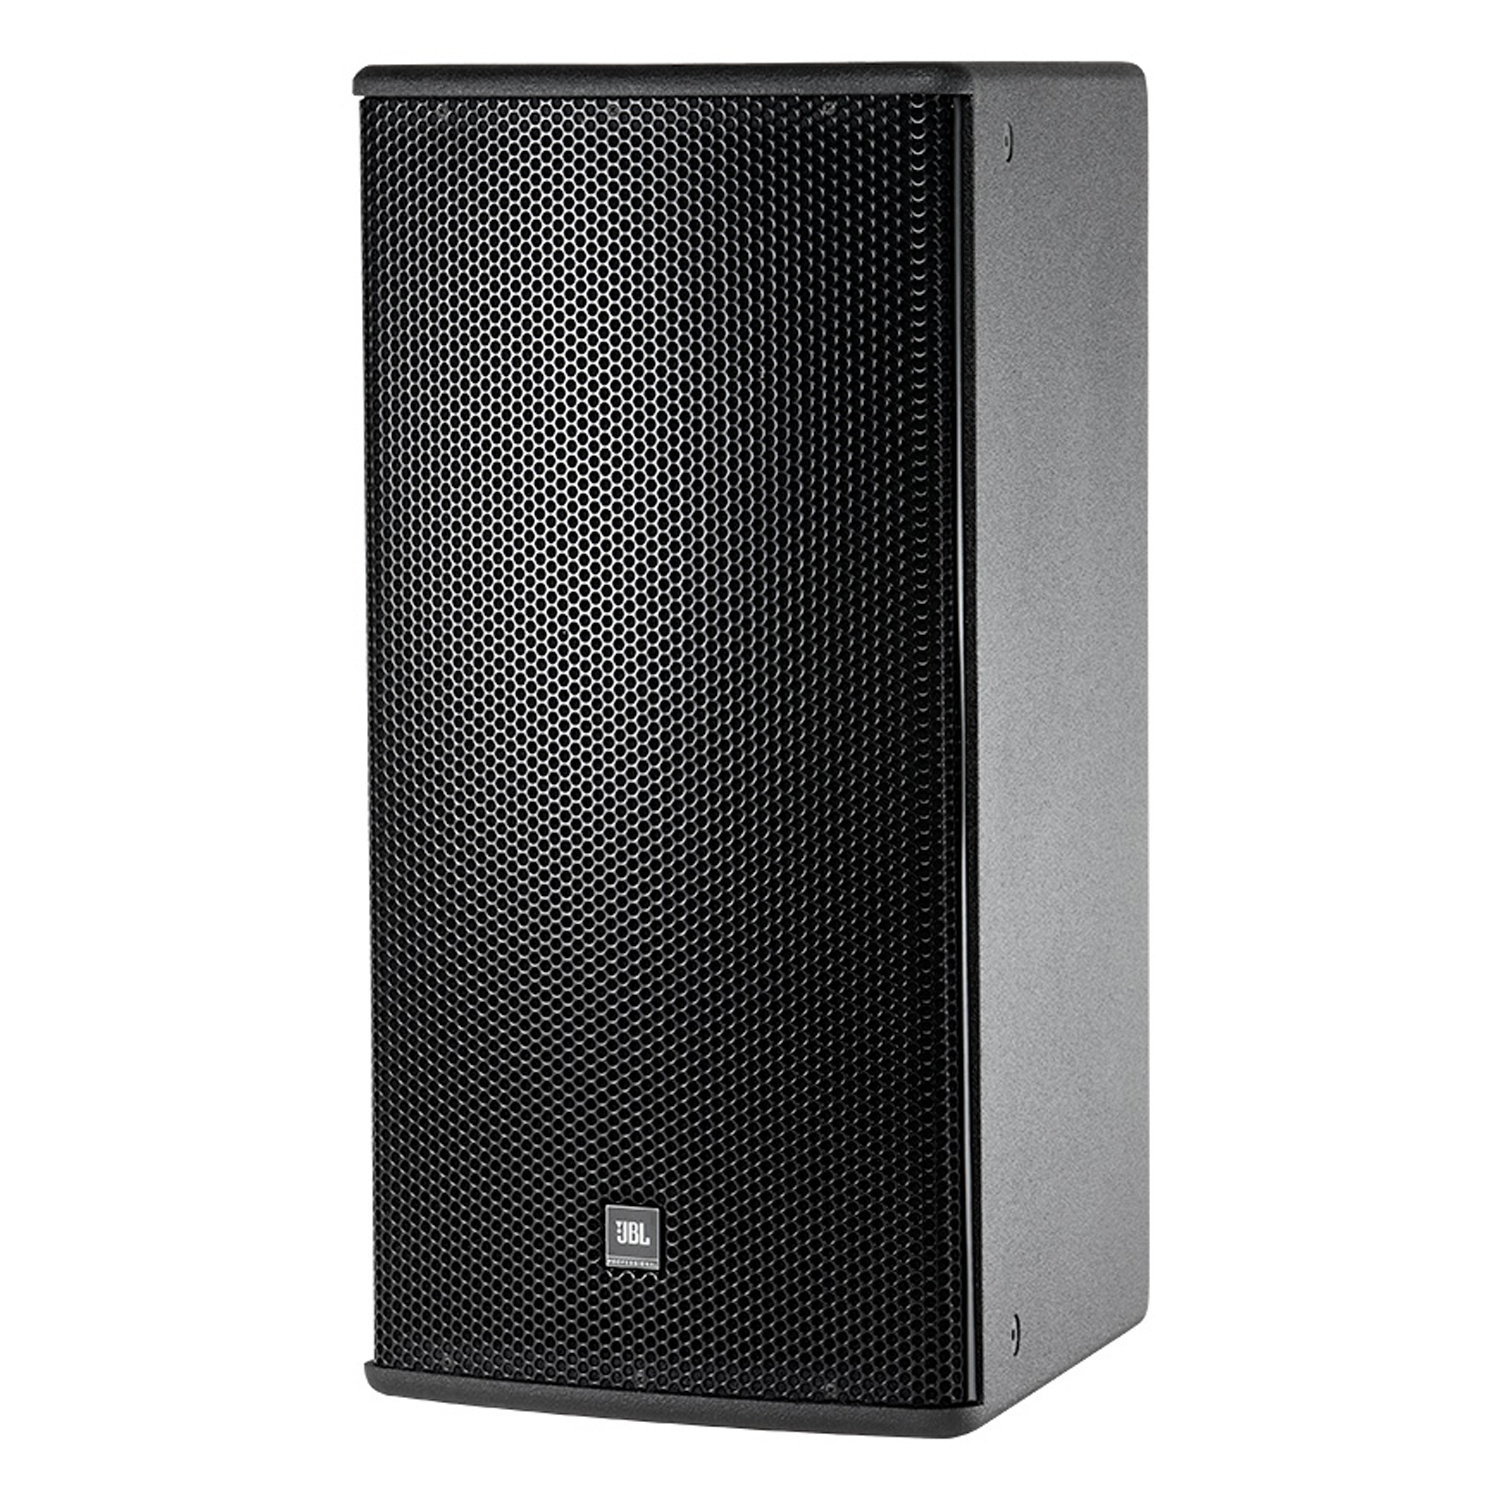 "2-Way Loudspeaker System with 1 x 12"" LF"